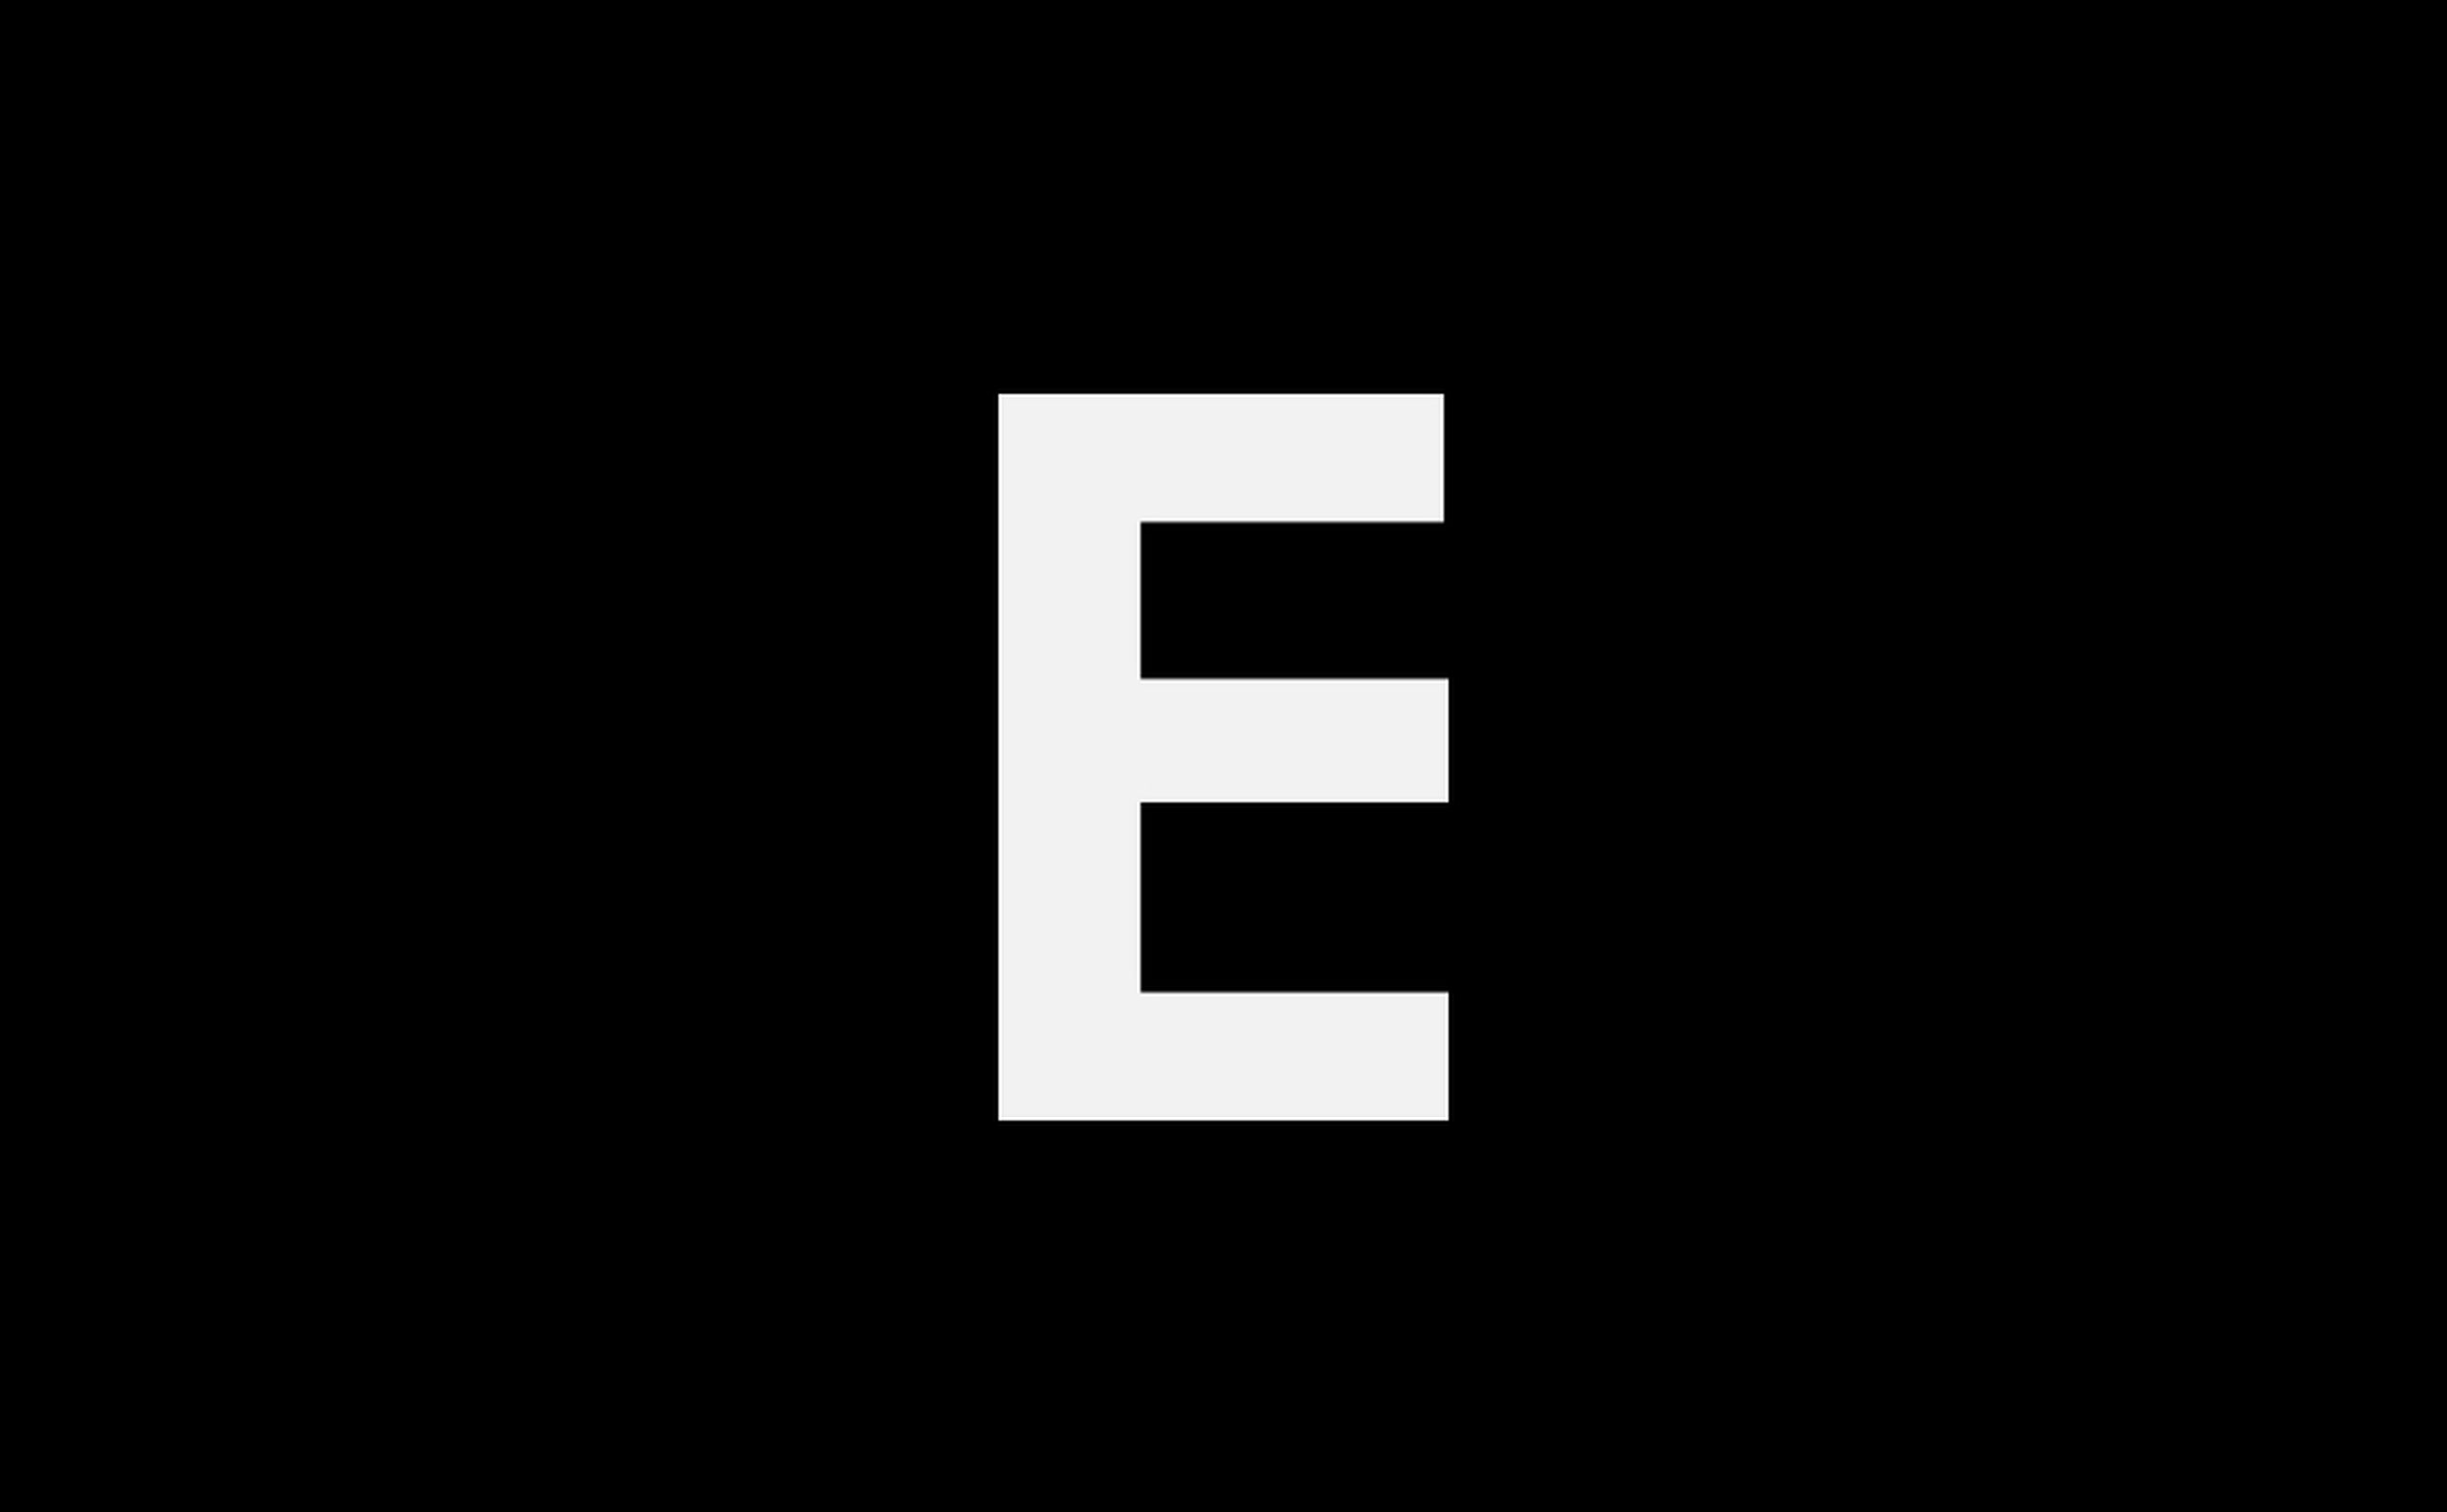 mountain, scenics - nature, leisure activity, beauty in nature, hiking, adventure, one person, real people, plant, activity, sky, tree, non-urban scene, full length, nature, lifestyles, tranquility, tranquil scene, standing, rear view, mountain range, outdoors